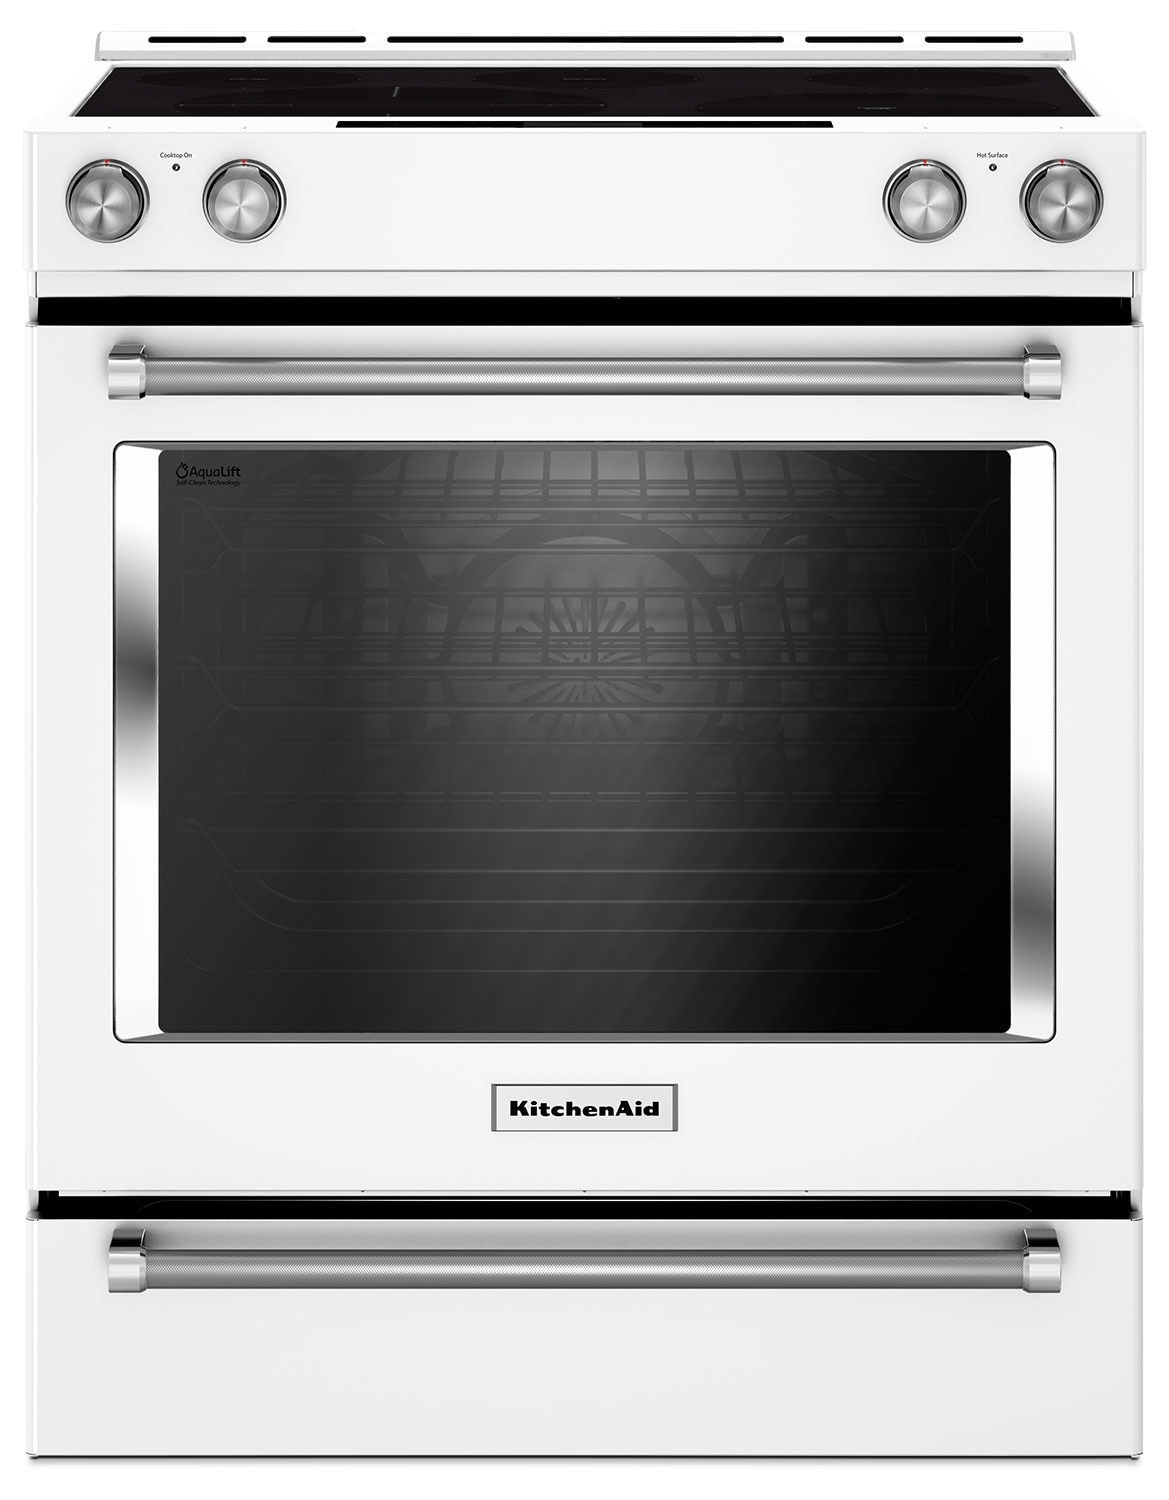 KitchenAid 7.1 Cu. Ft. Slide-In Convection Range with Baking Drawer - White